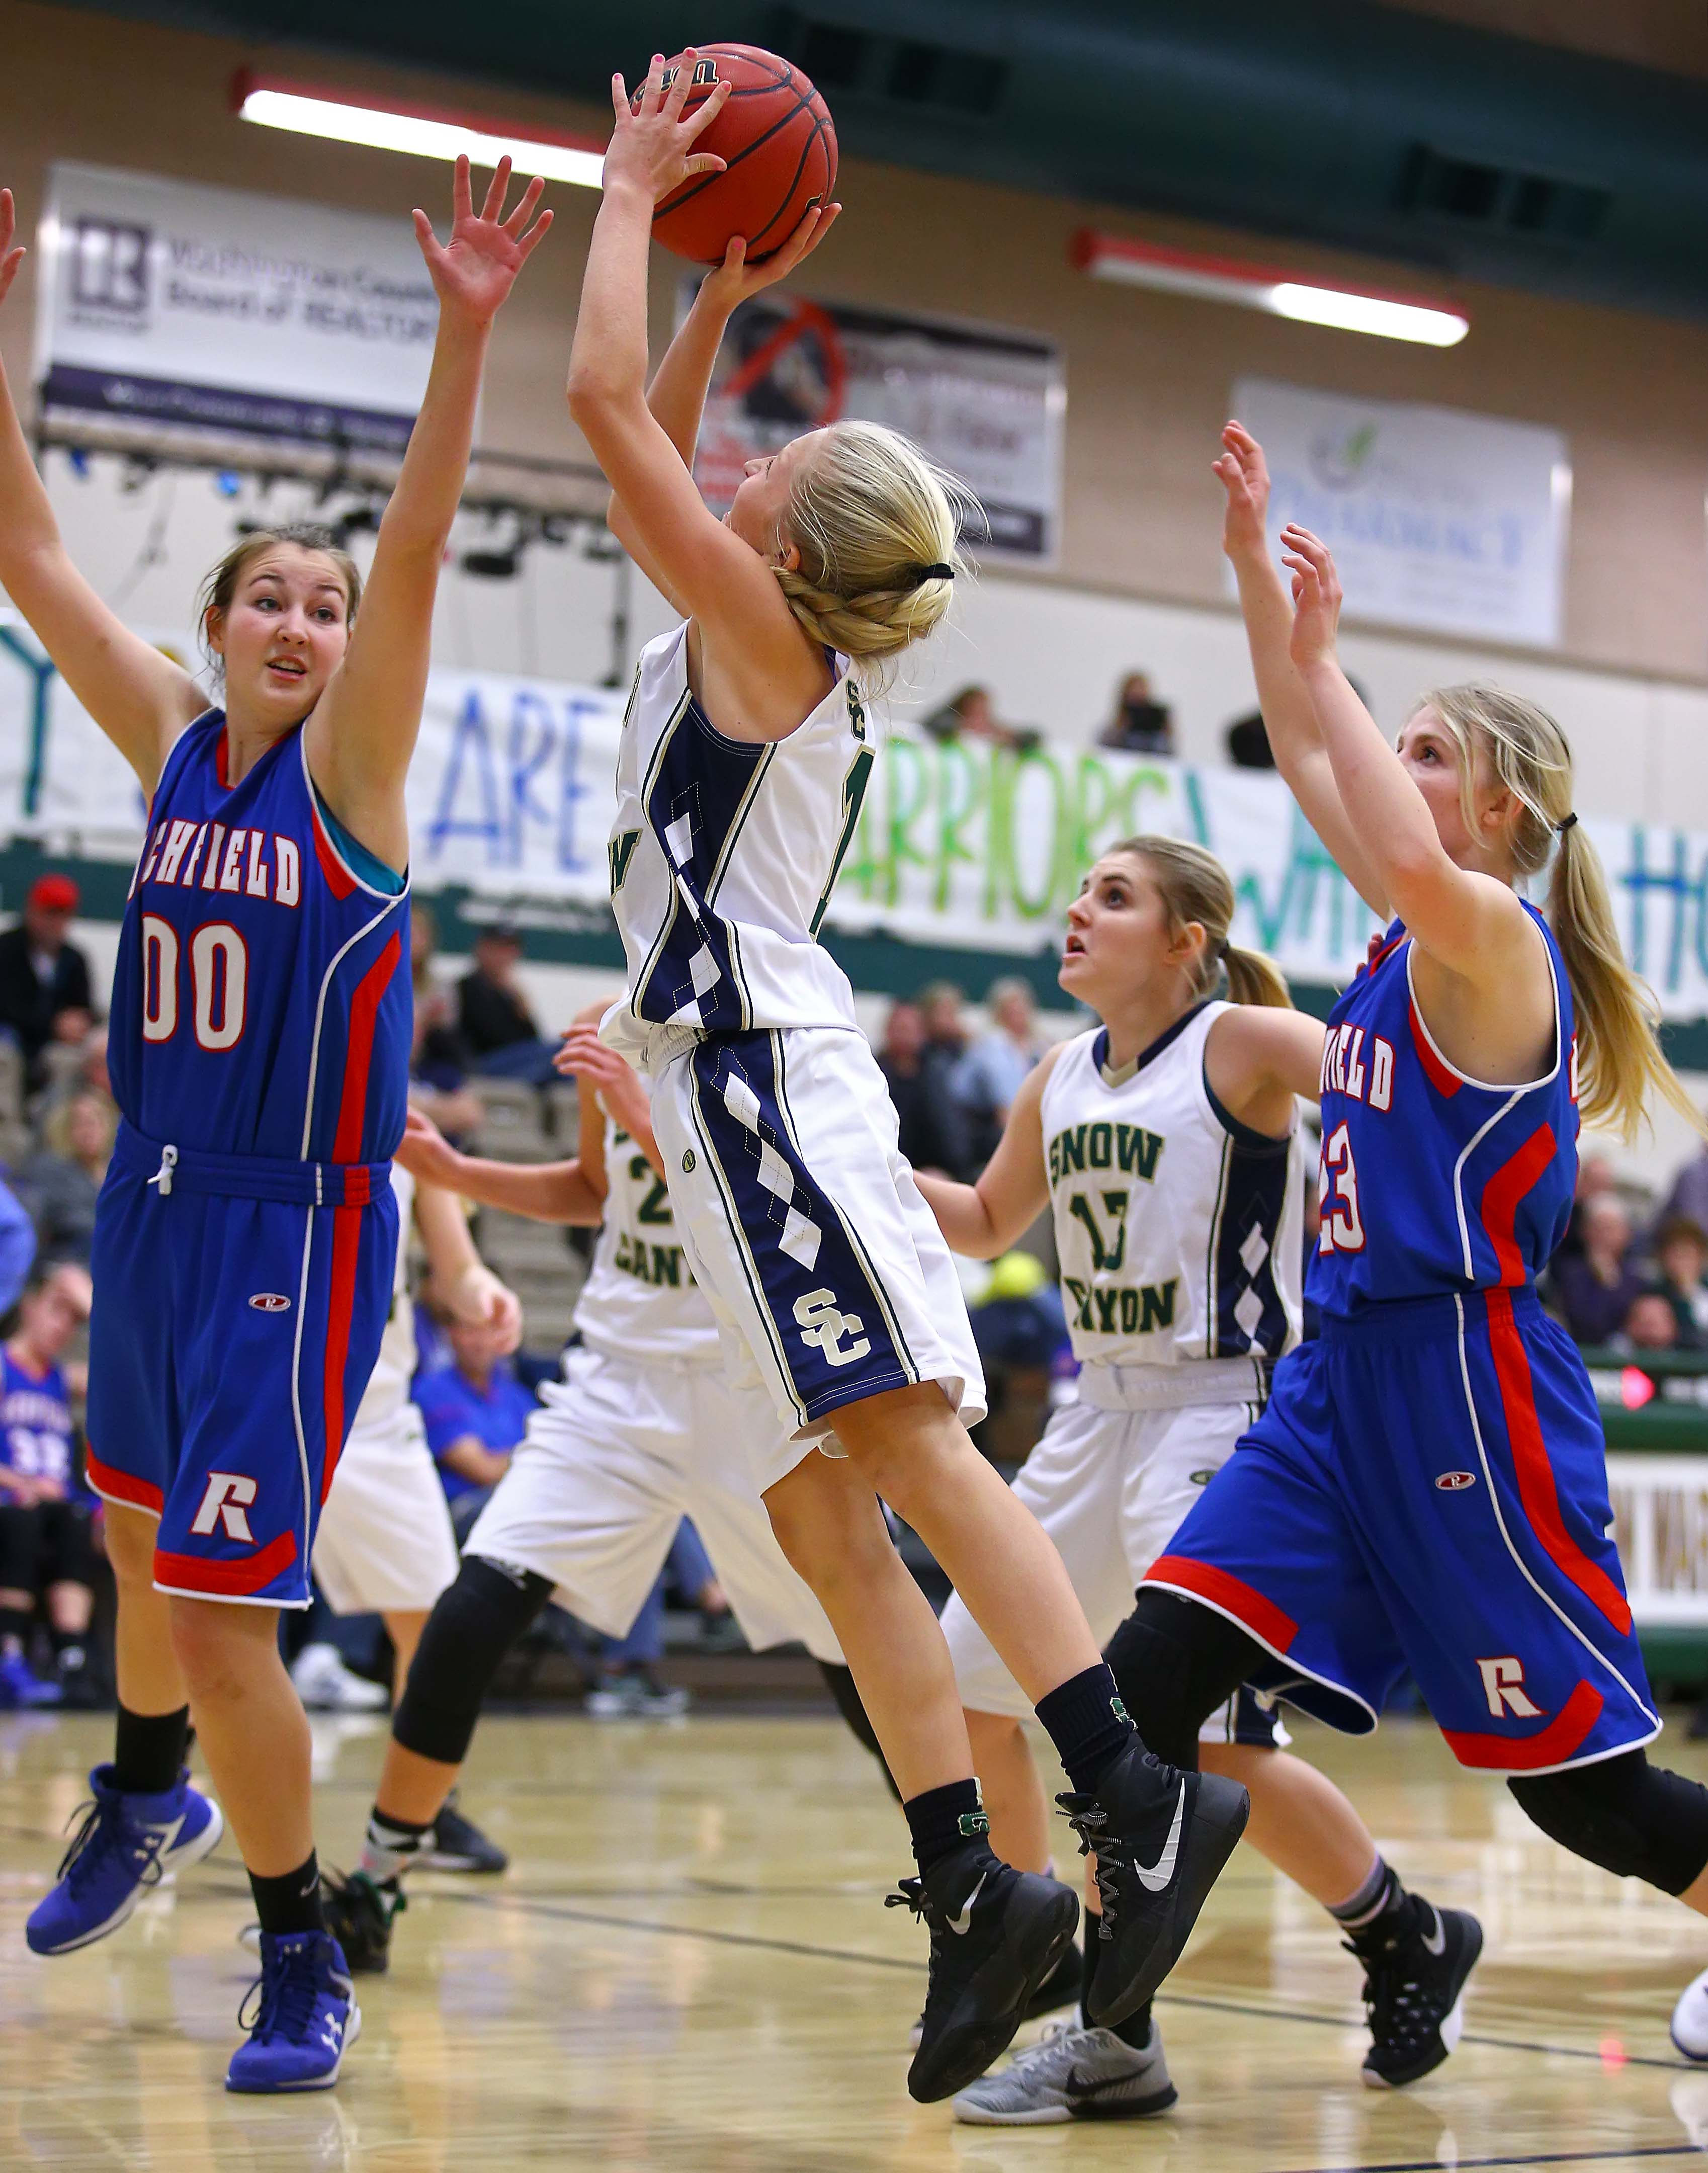 Snow Canyon's Tylei Jensen (1), Snow Canyon vs. Richfield, Girls Basketball, St. George, Utah, Dec. 9, 2016, | Photo by Robert Hoppie, ASPpix.com, St. George News